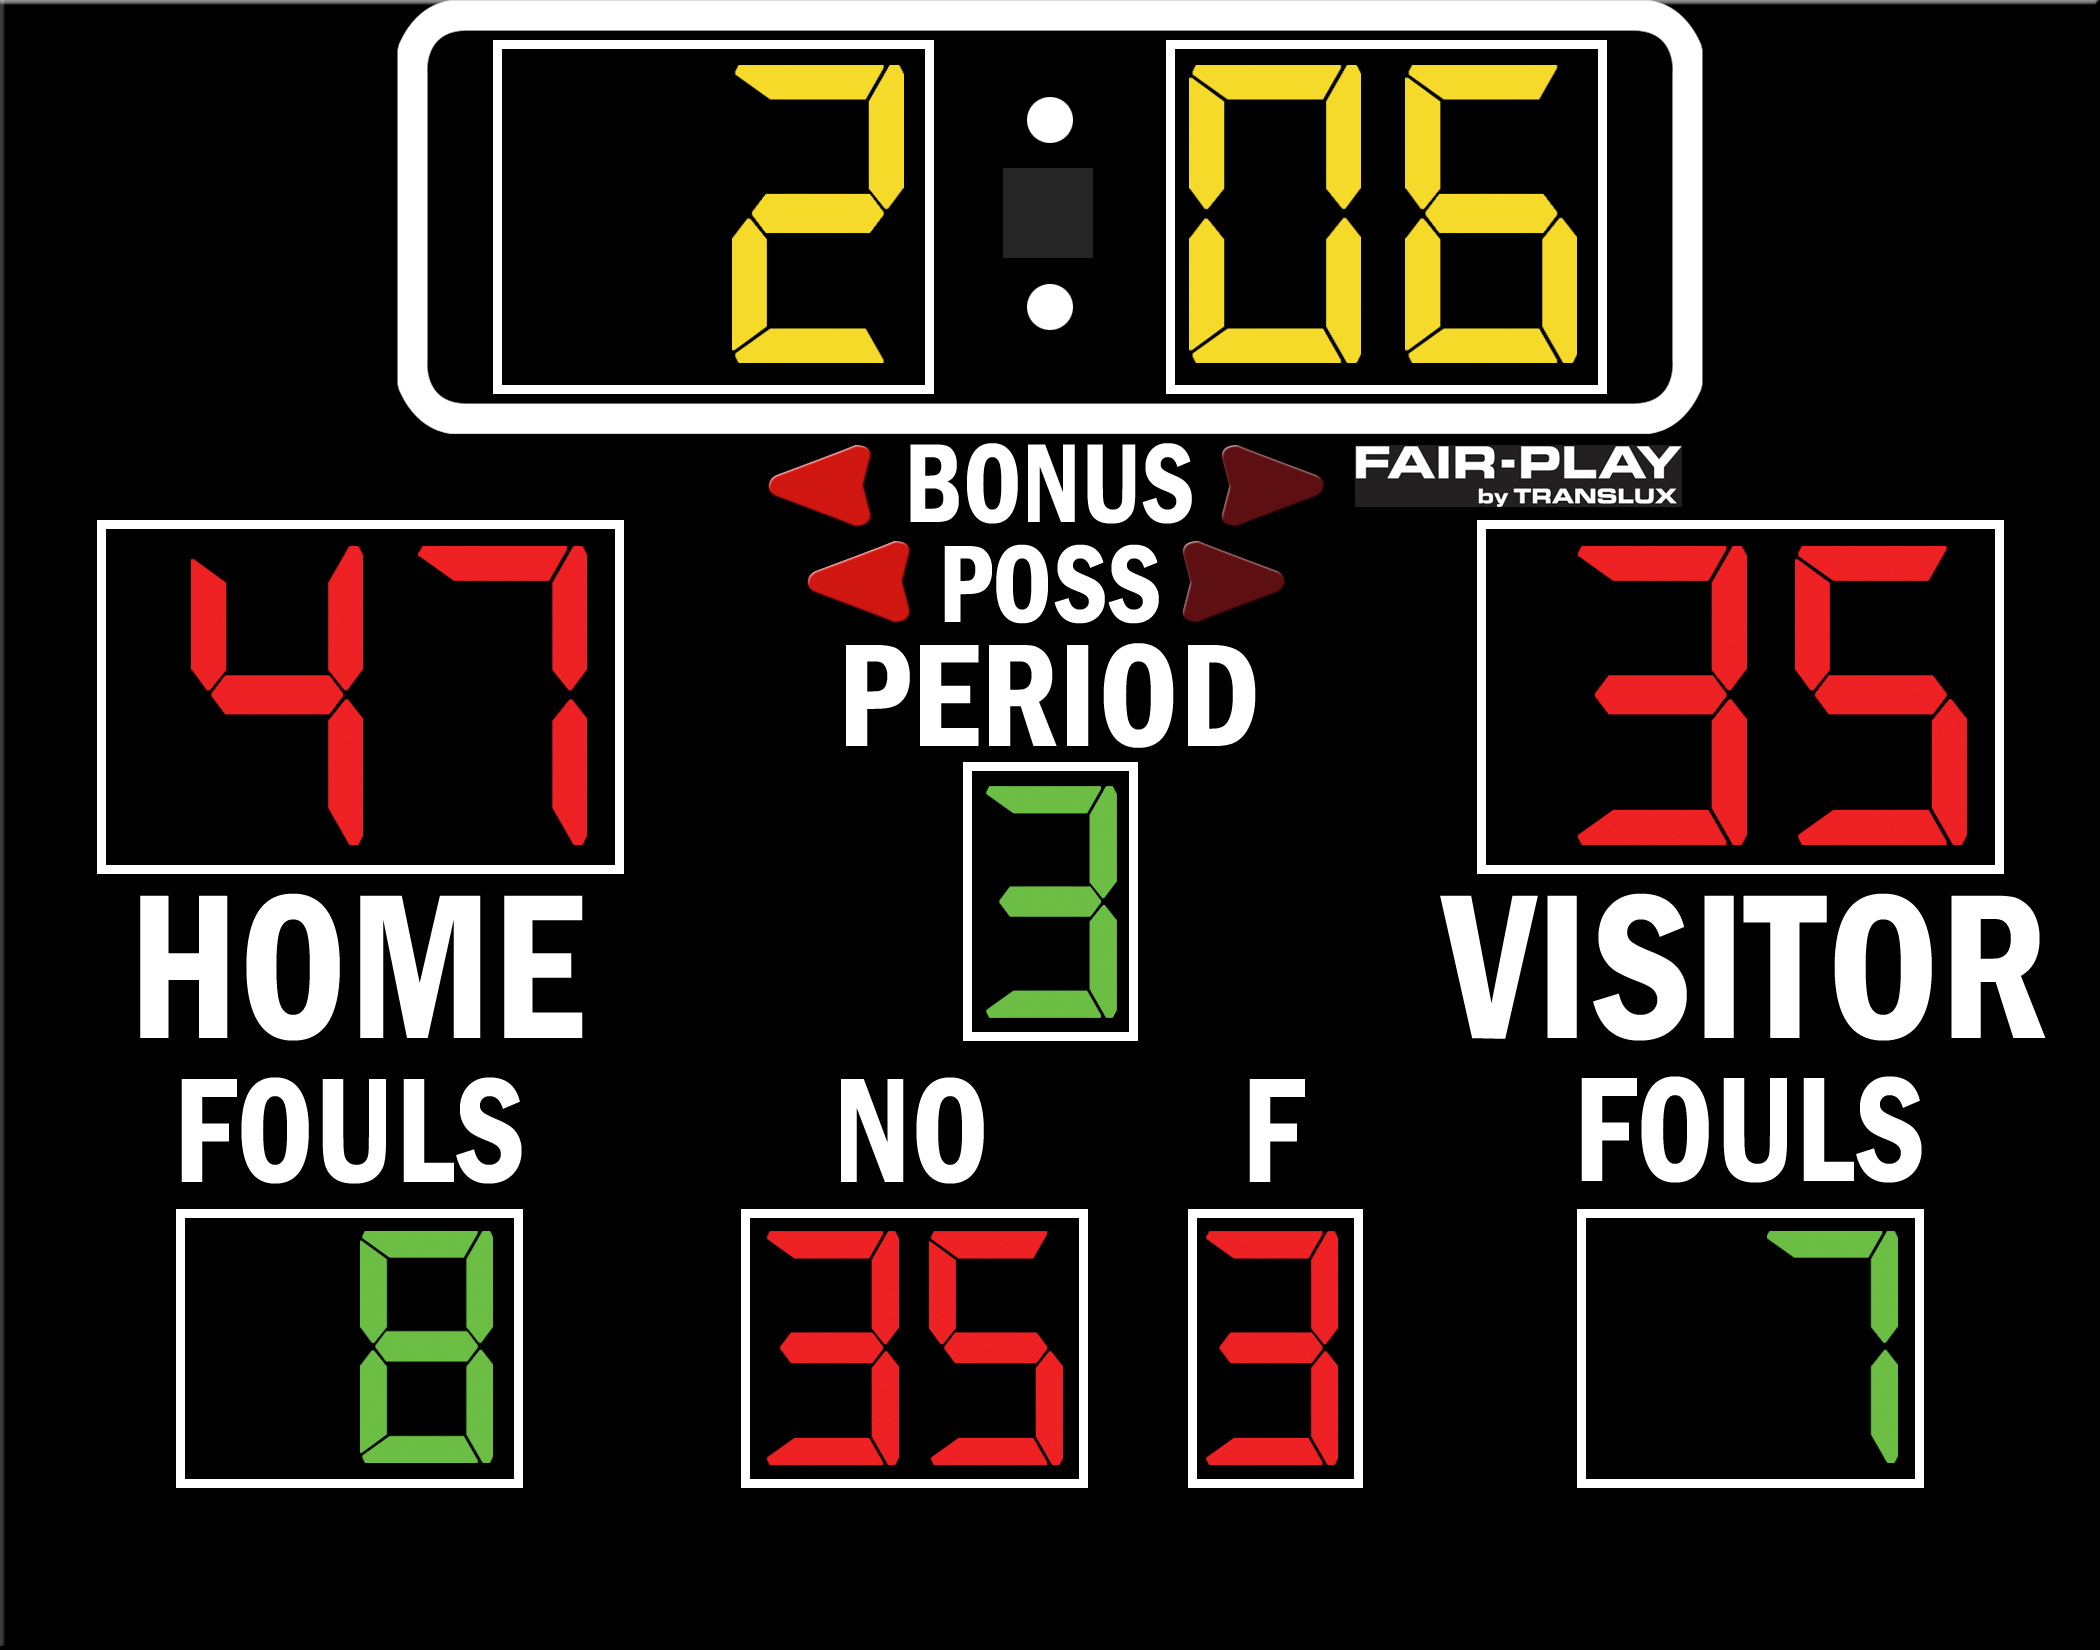 Fair-Play BB-1520-4 Basketball Scoreboard